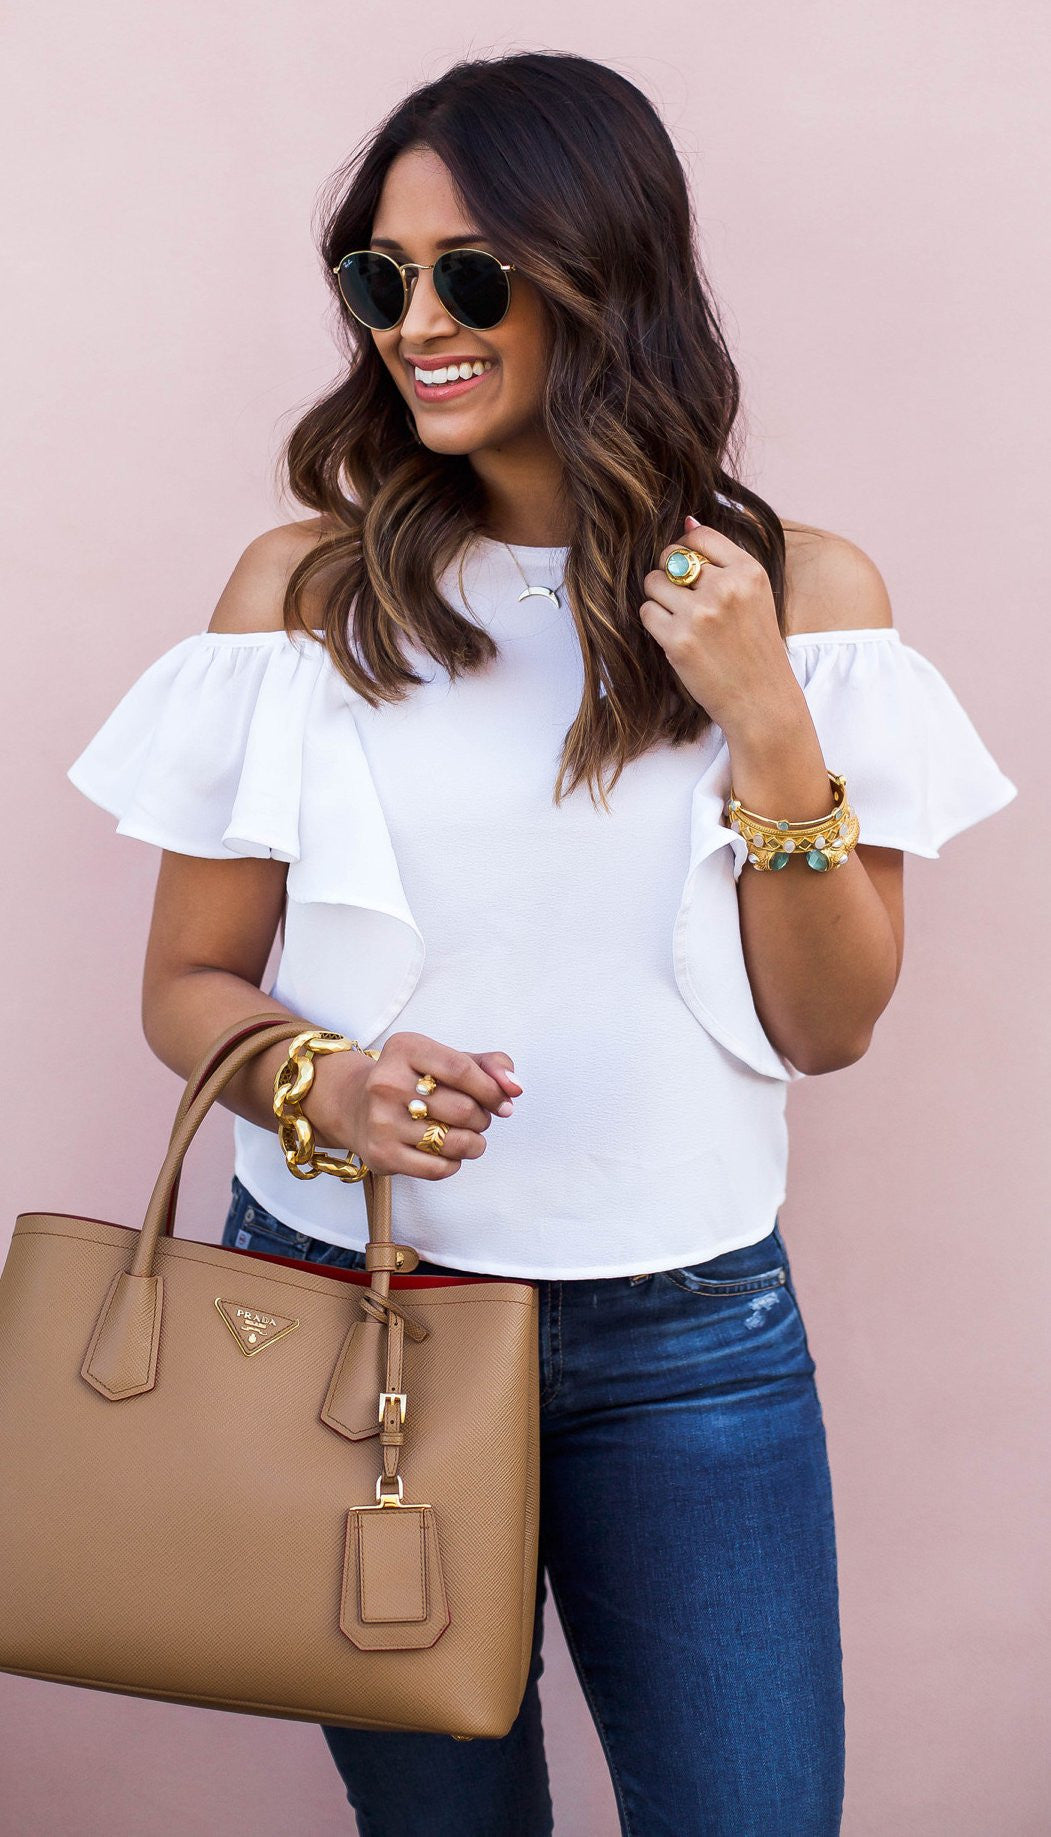 12 Cute Spring Outfit Ideas You Can Steal From These Girls